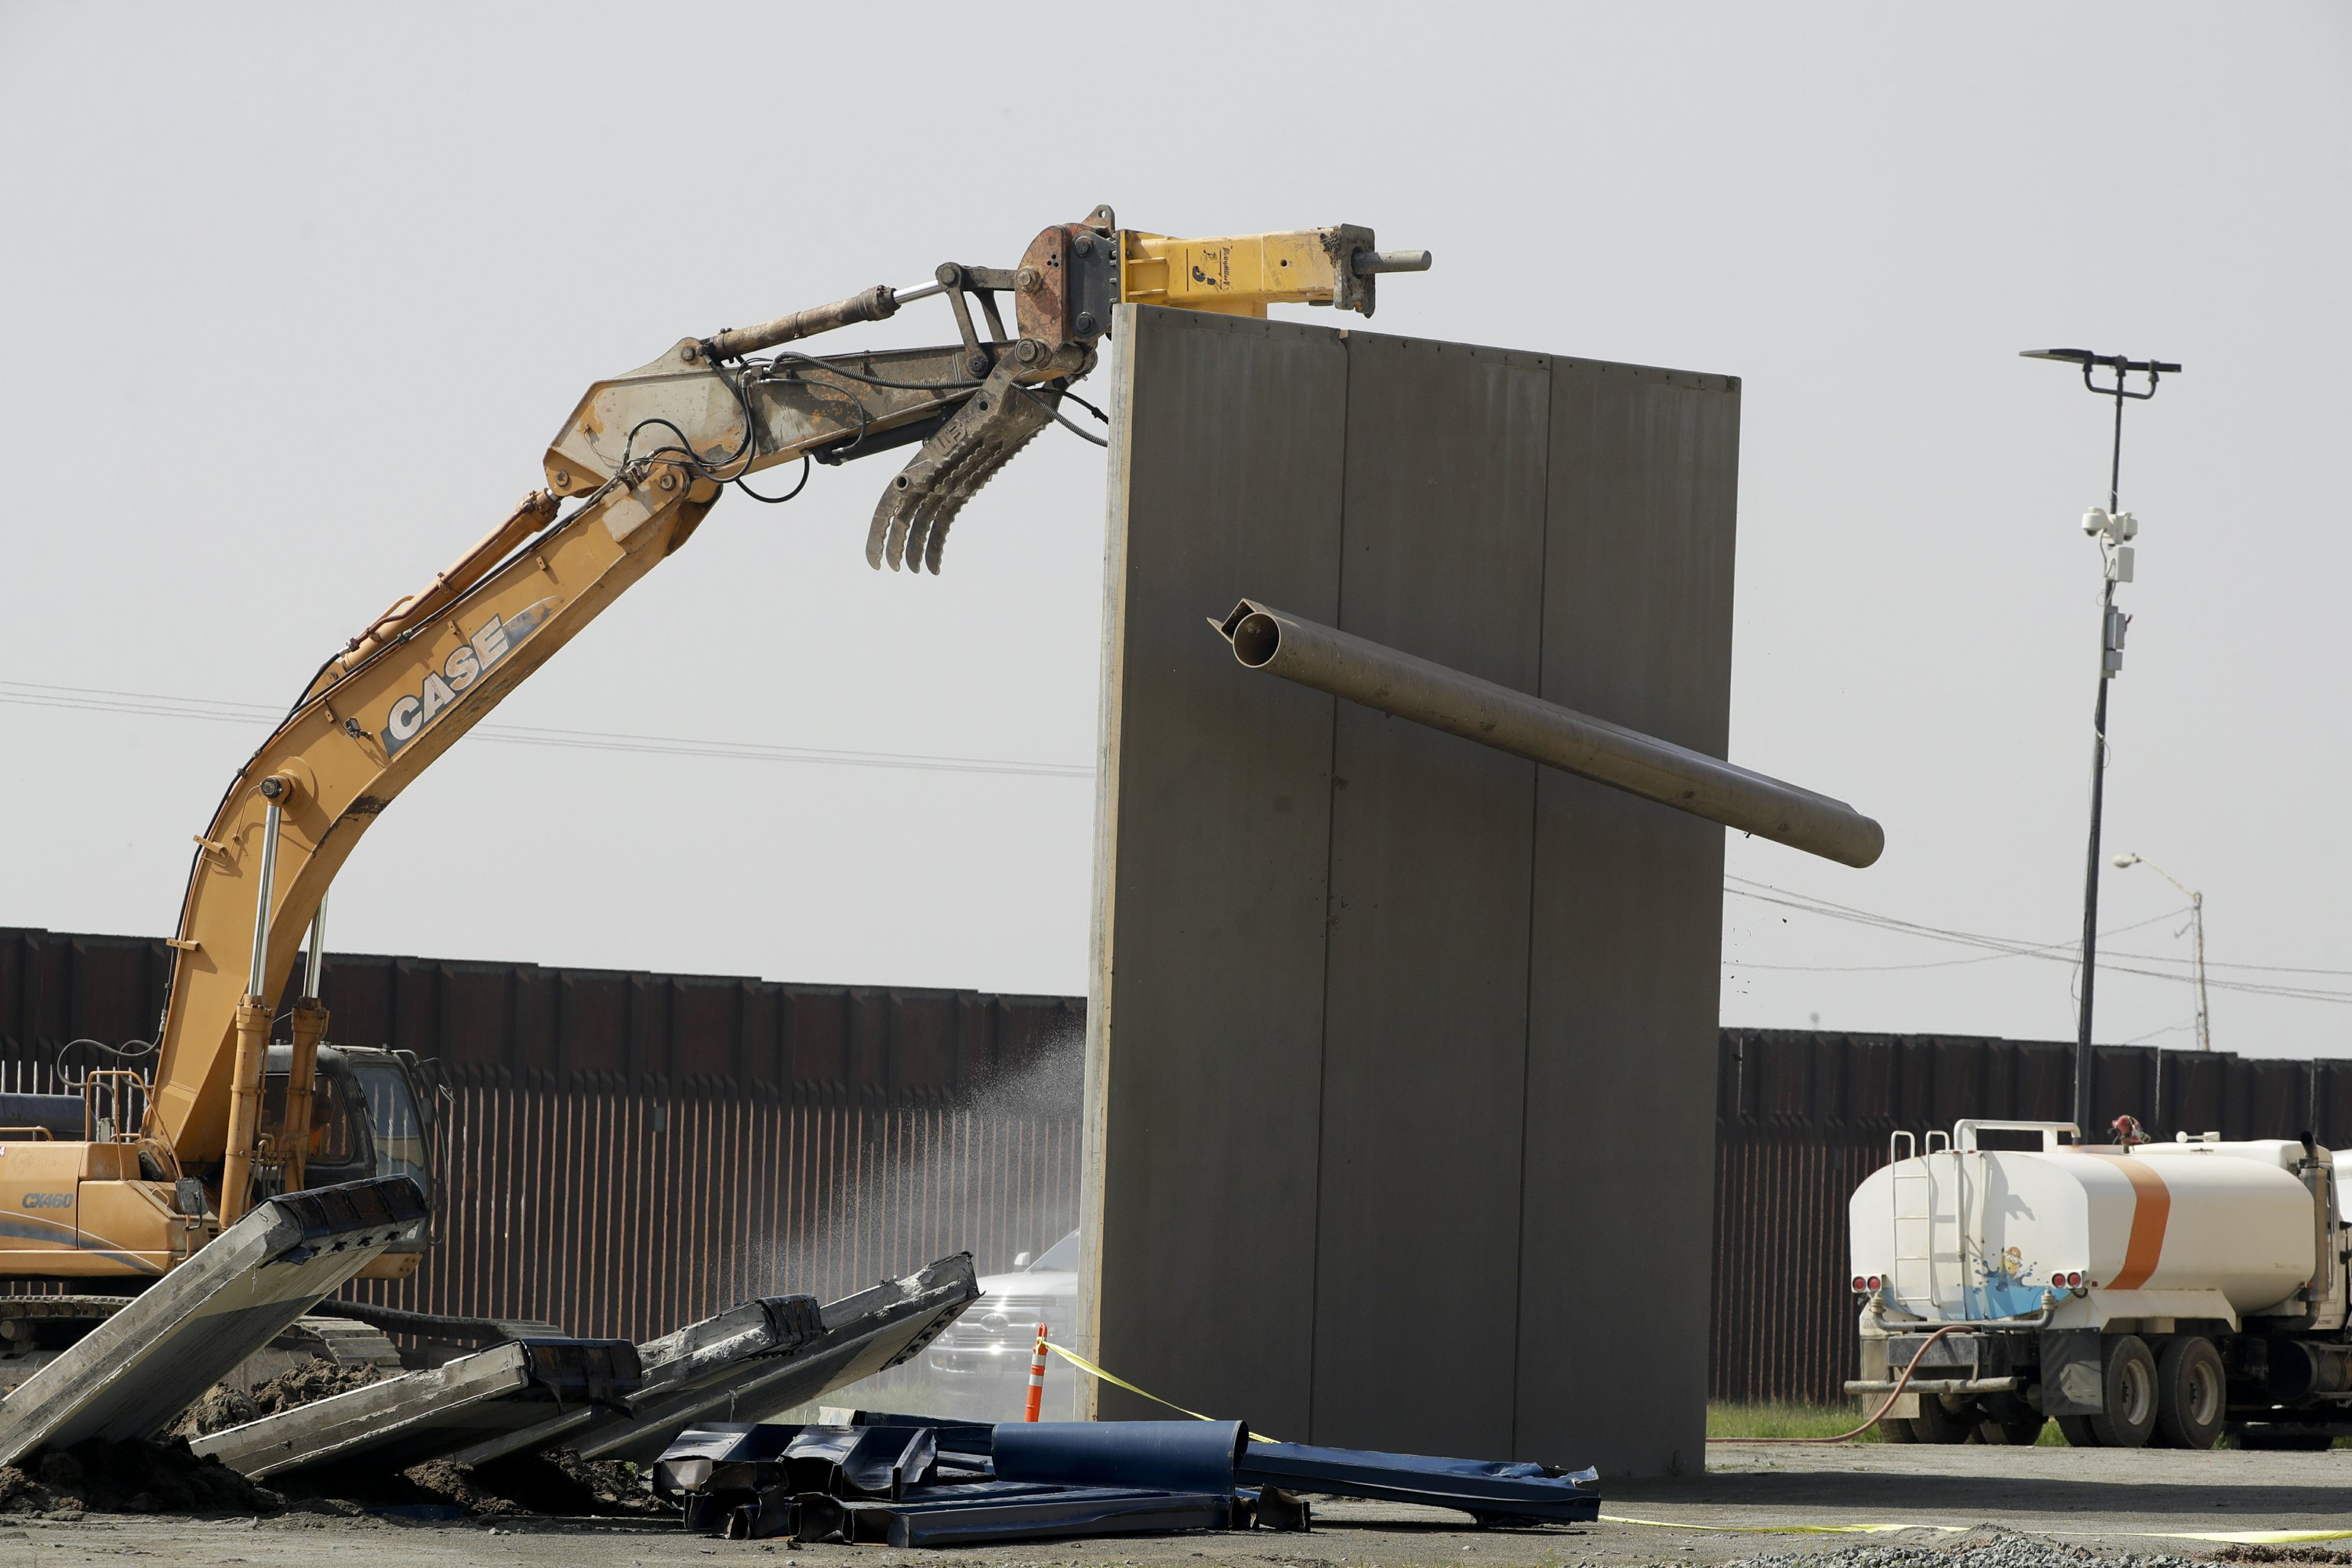 Amid clouds of dust, border wall prototypes are demolished